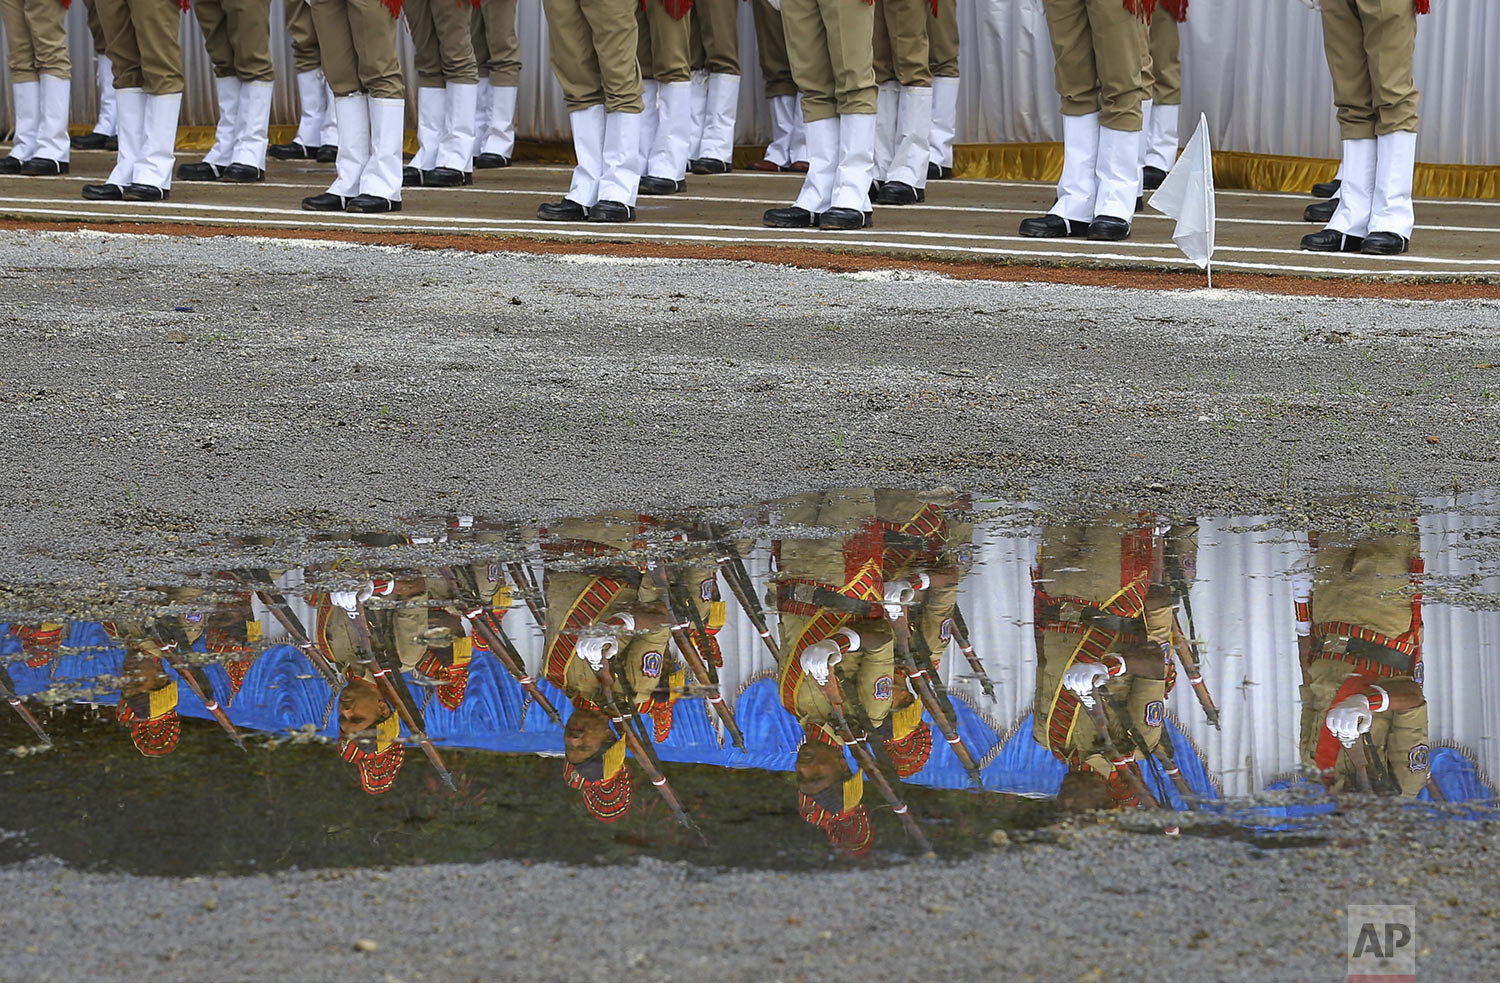 Indian policemen pay homage to mark Police Commemoration Day in Hyderabad, India, Monday, Oct. 21, 2019.  (AP Photo/Mahesh Kumar A., File)